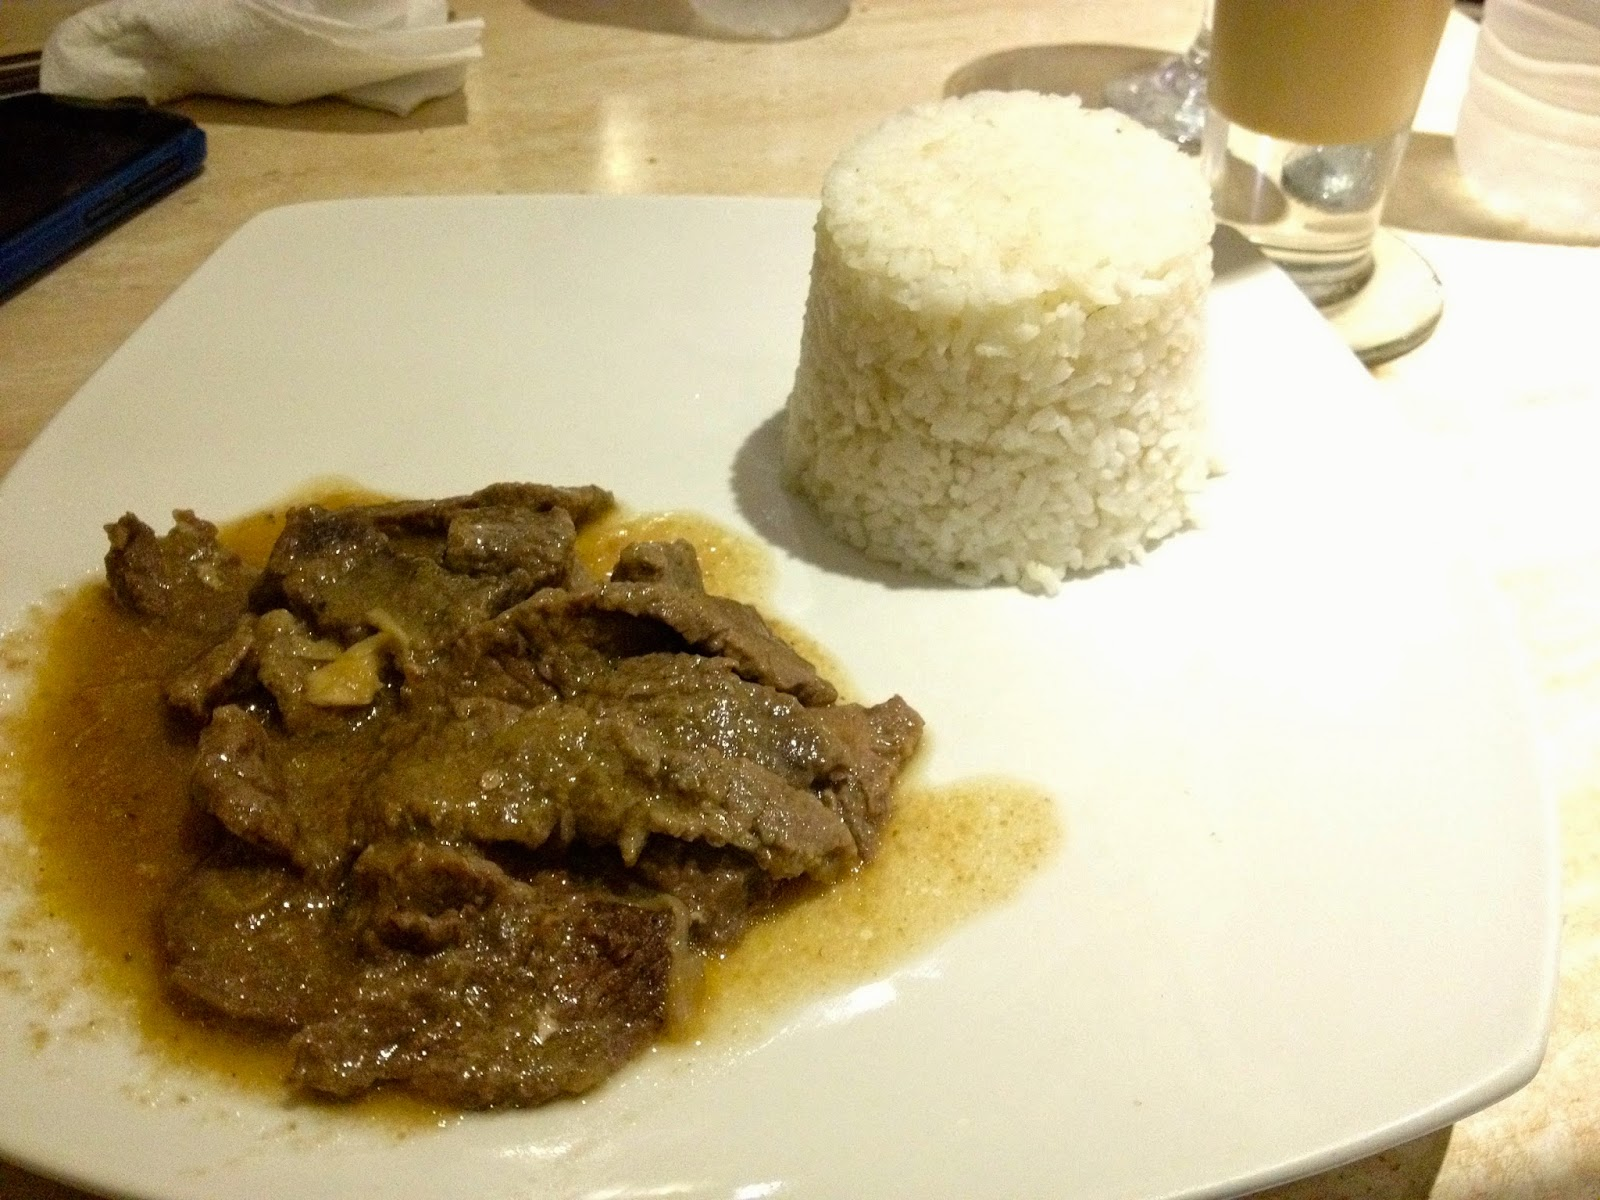 Ostrich meal at Camia Street Cafe Cebu